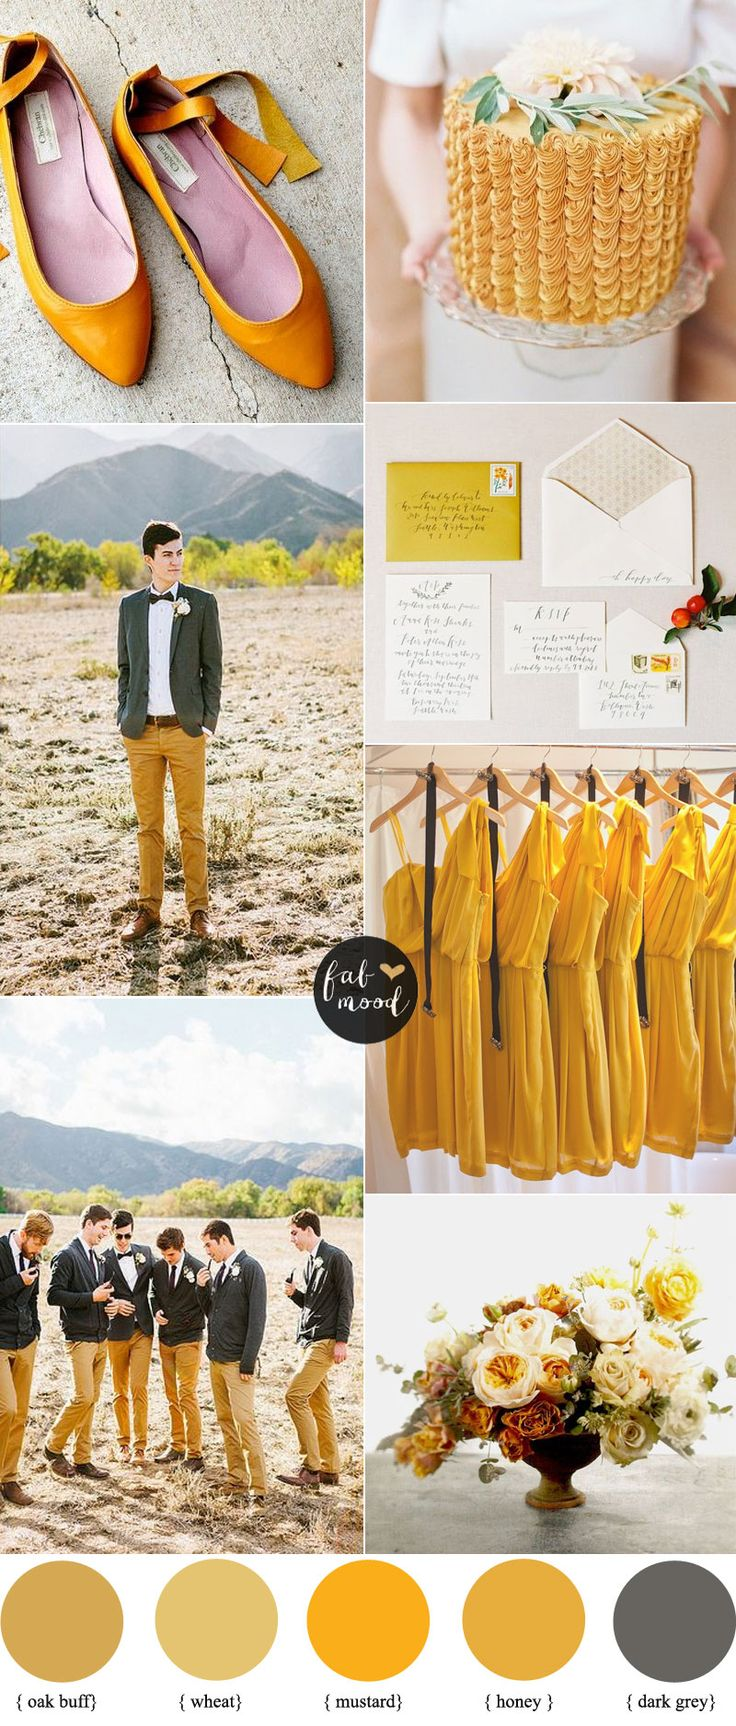 Oak Buff , Mustard and Grey Wedding | Pantone Fall 2015 inspired | fabmood.com- except those pants.